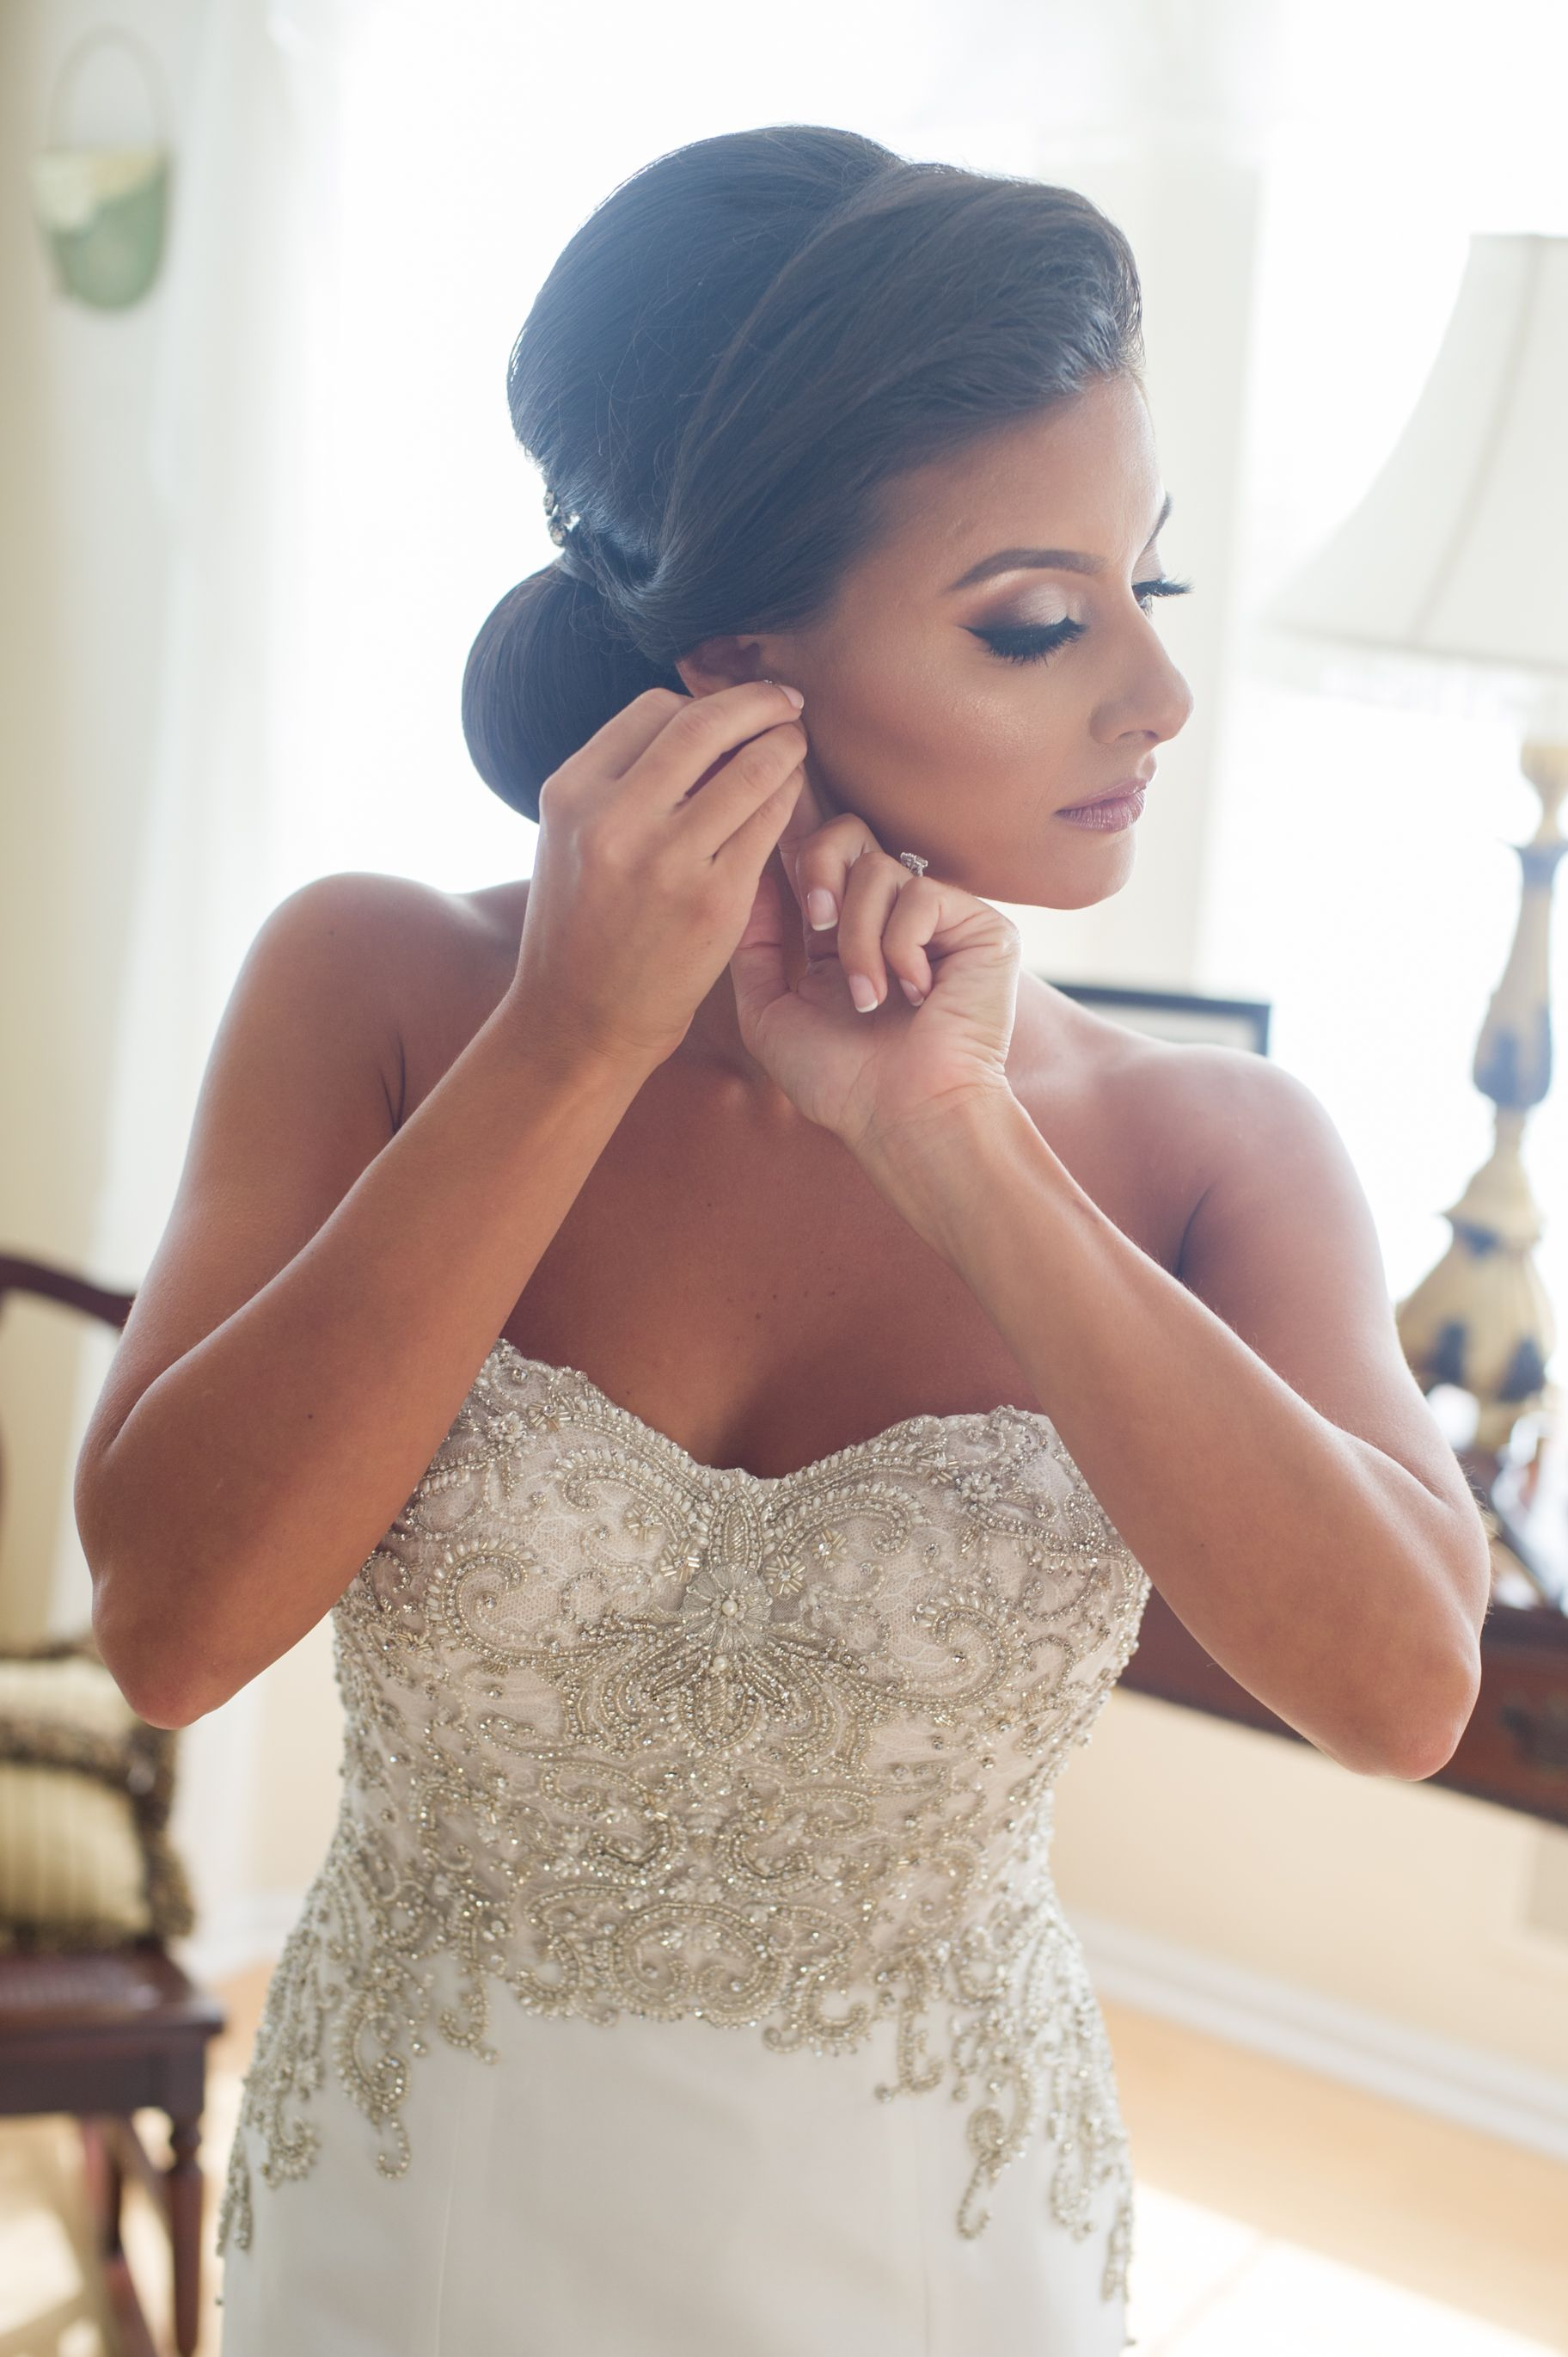 Picture perfect bridal makeup and styled updo for the bride to be